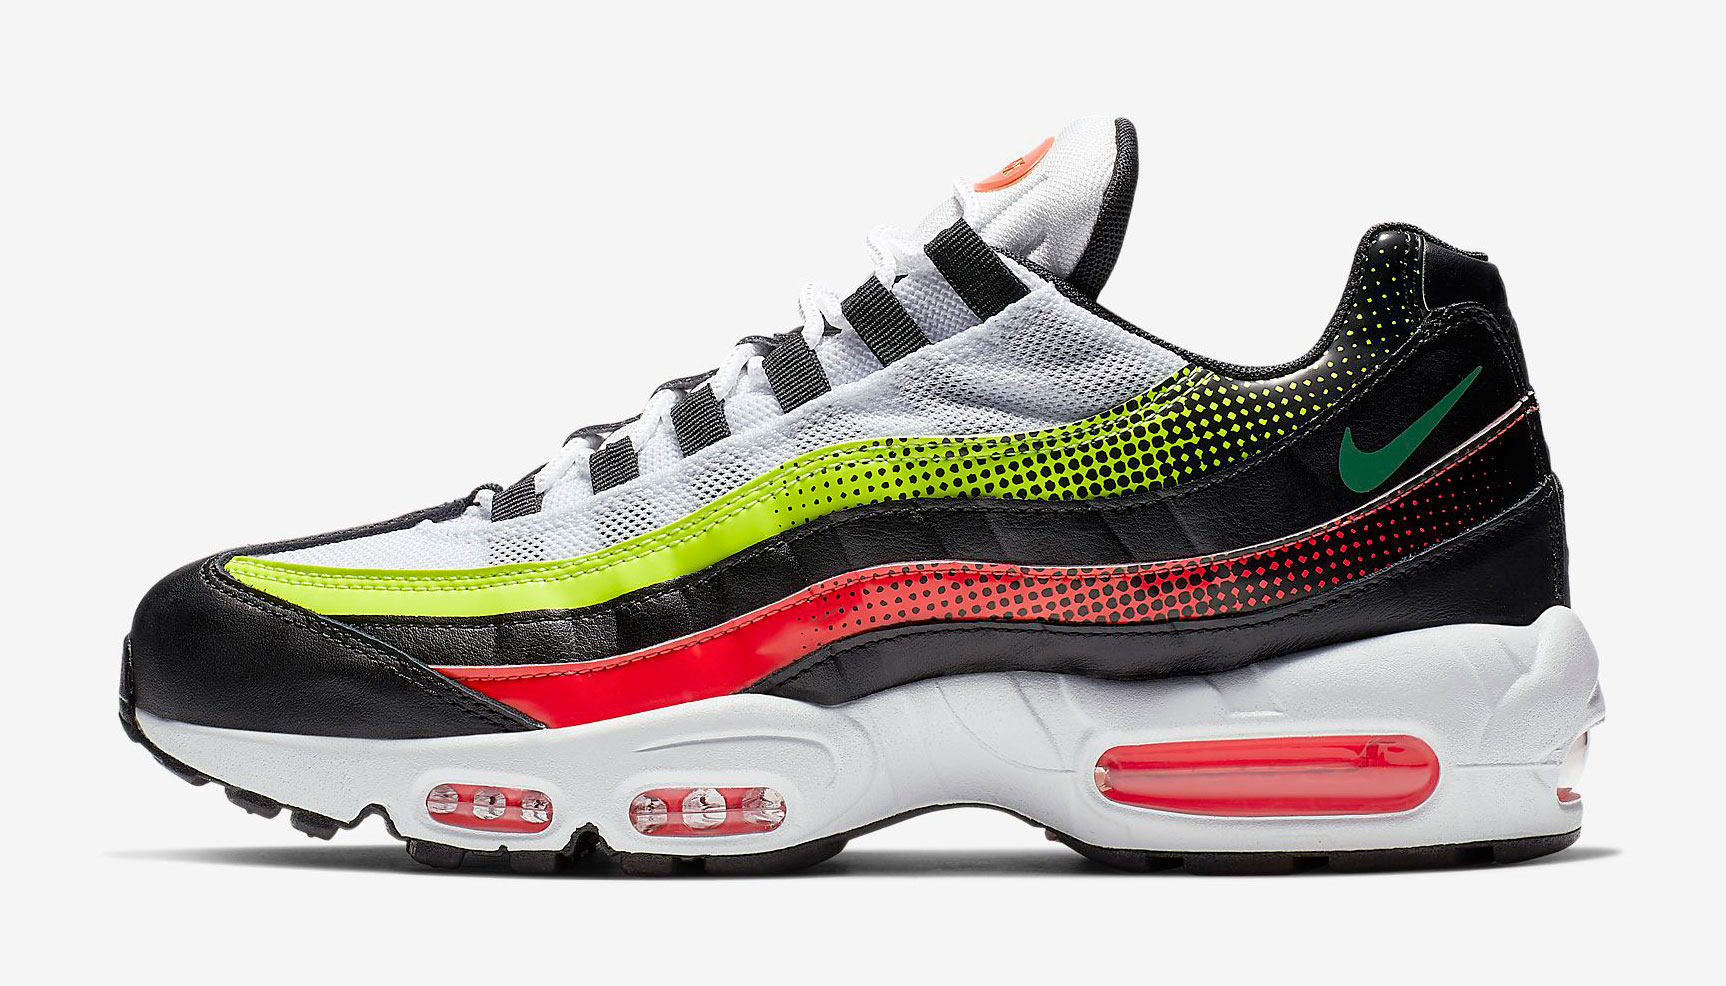 nike-air-max-95-retro-future-where-to-buy